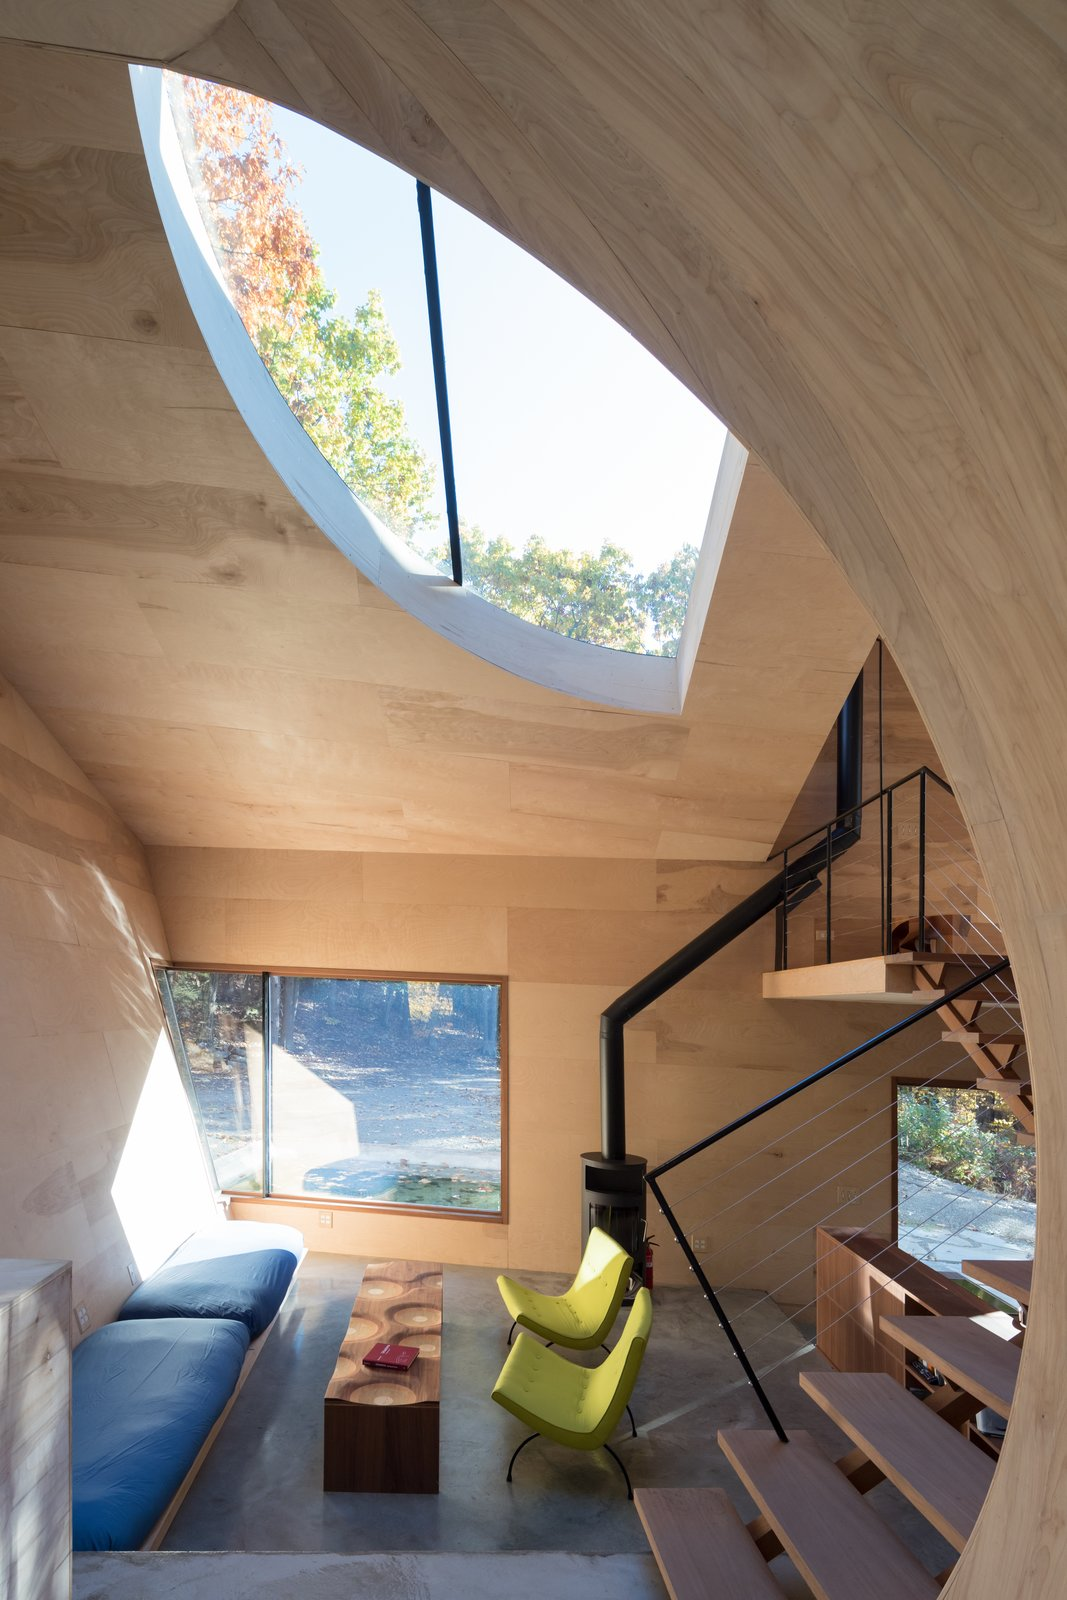 Living Room, Wood Burning Fireplace, Coffee Tables, Bench, Chair, and Concrete Floor Ex of In House by Steven Holl Architects, Interior, Living   Best Photos from The Compact, Solar-Powered Ex of In House Sits Lightly Upon the Land